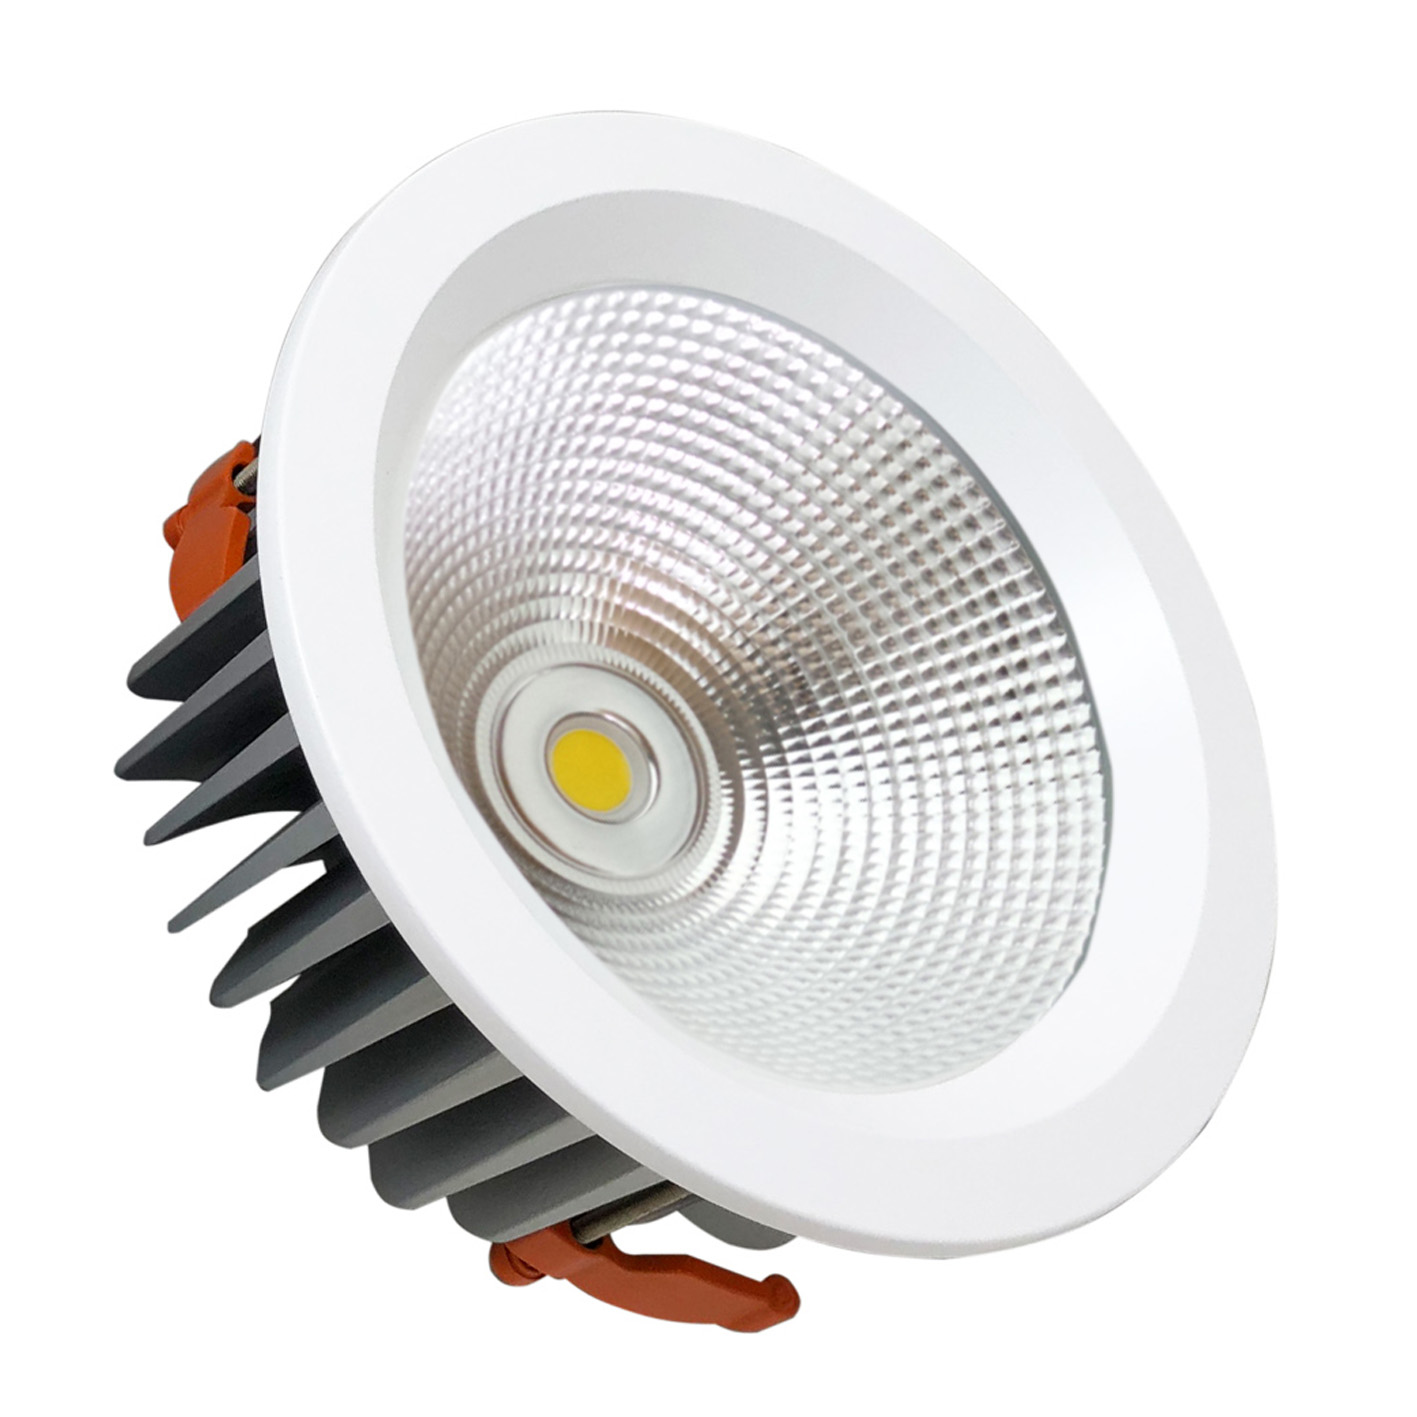 LED floodlight 40W recessed Cob Powerful Bright led built-Silamp spotlight 230mm